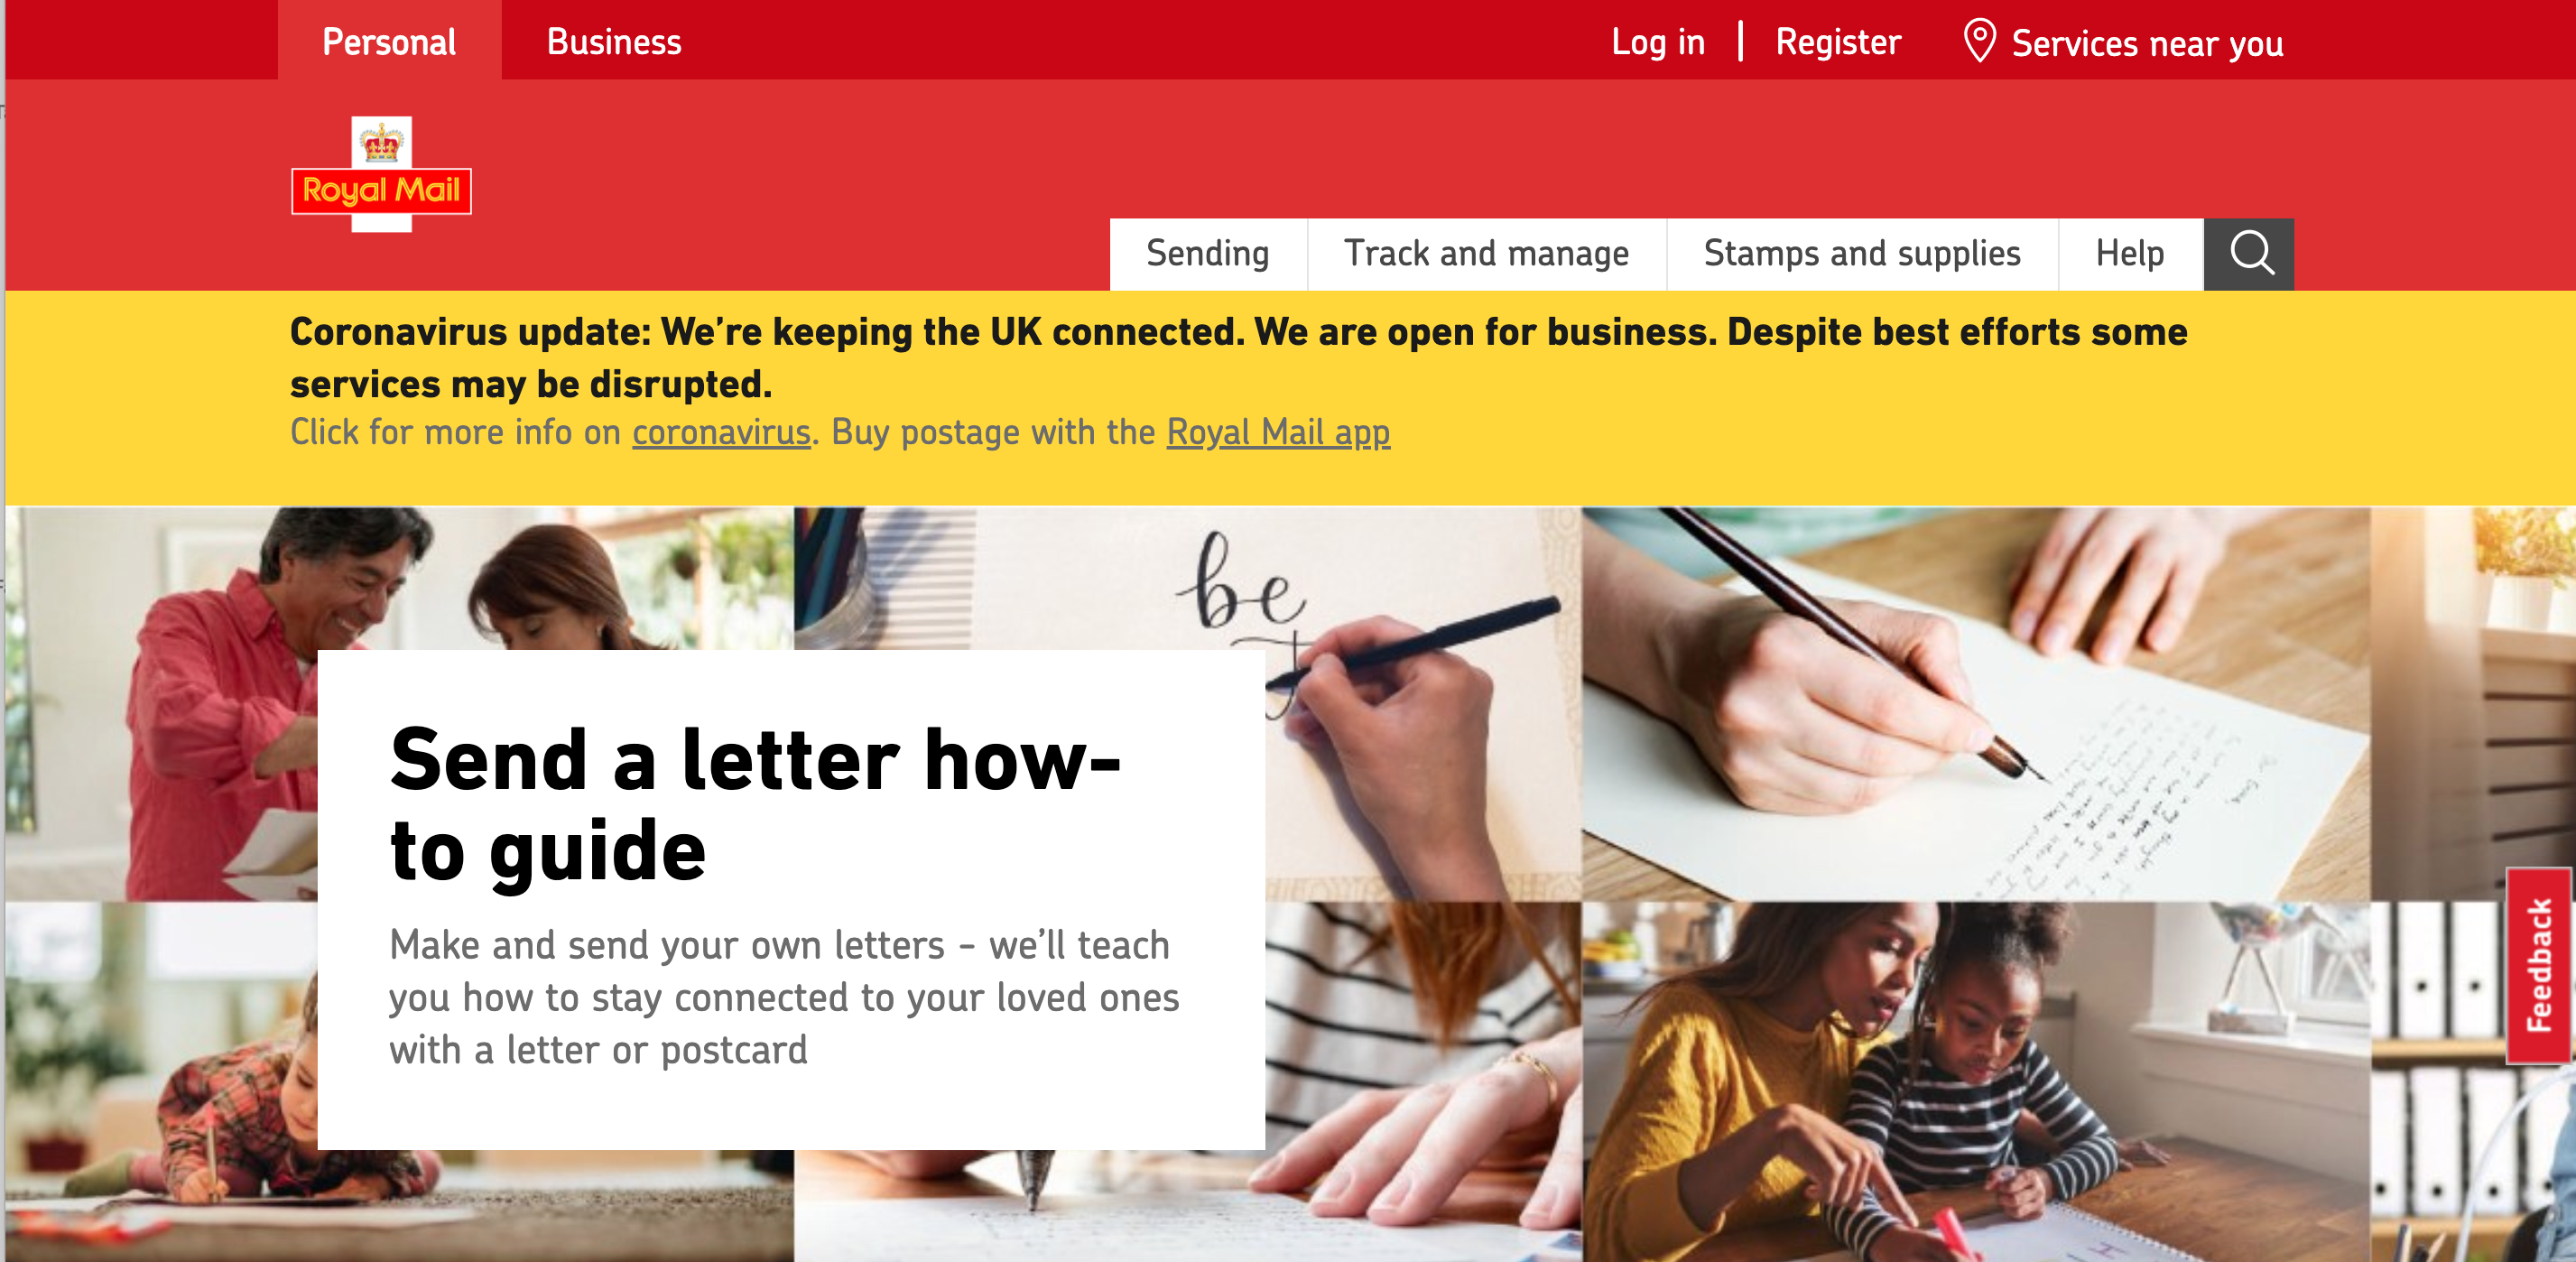 Above: Royal Mail has launched a Send a Letter campaign which encourages the sending of cards, postcards as well as letters.